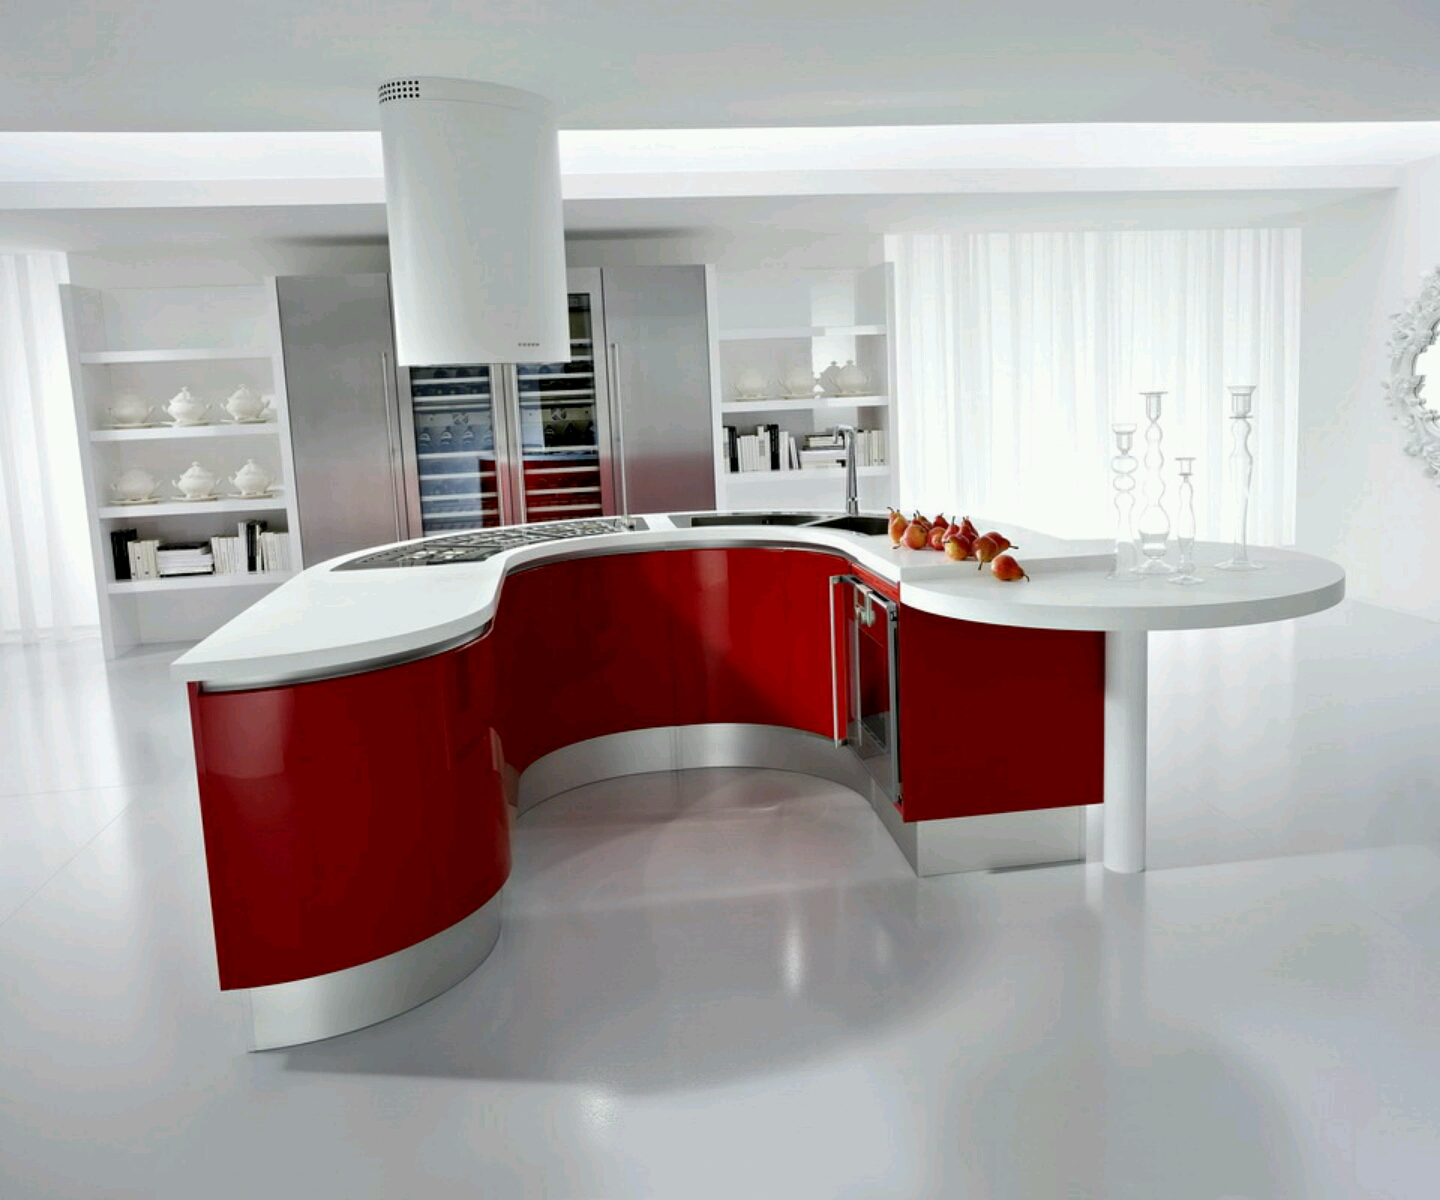 Modern kitchen cabinets designs ideas furniture gallery for Modern kitchen design